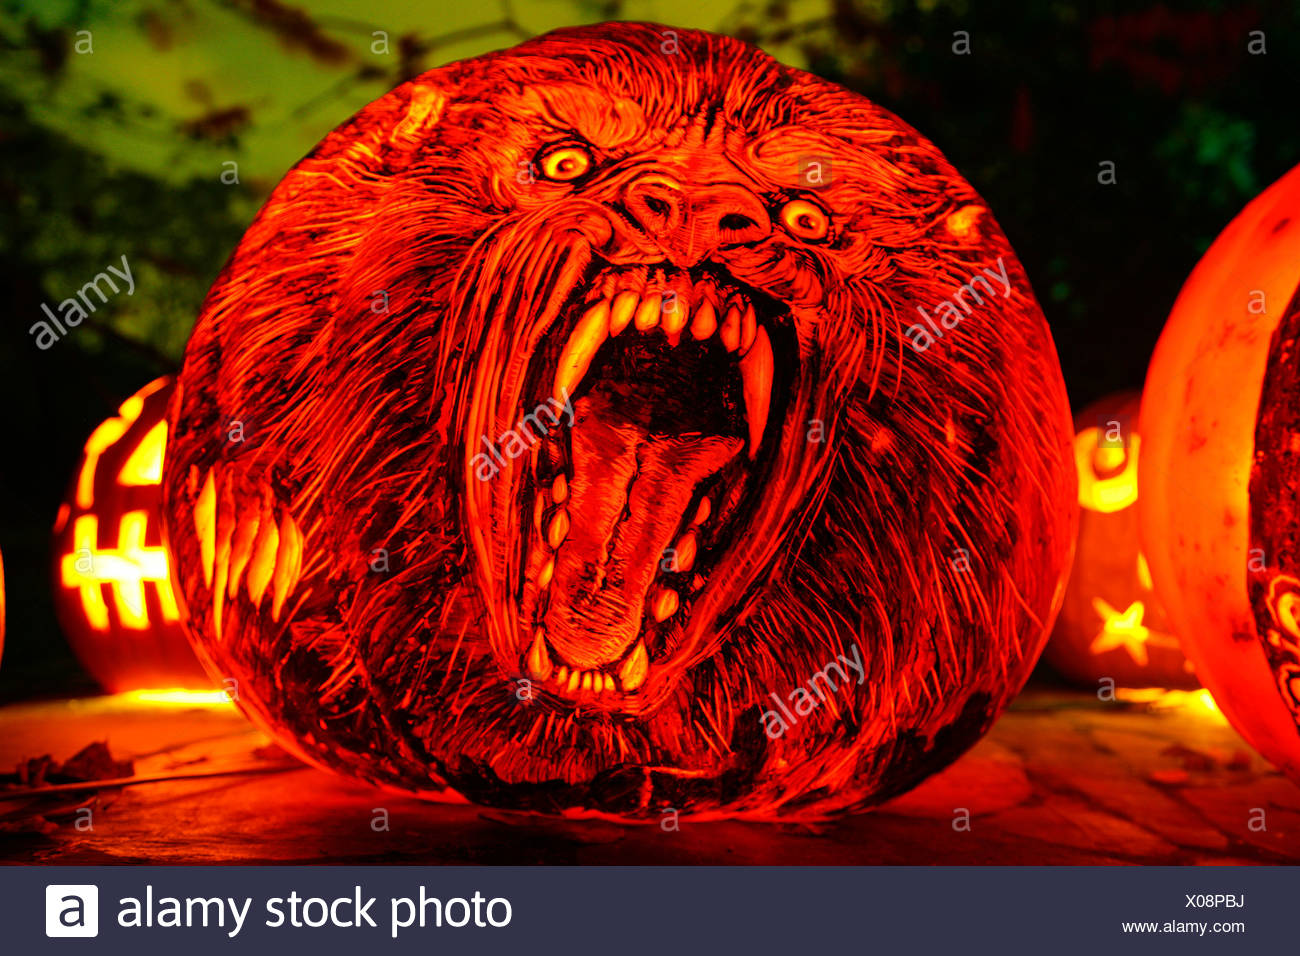 close-up of a jack o' lantern with the face of werewolf, roger